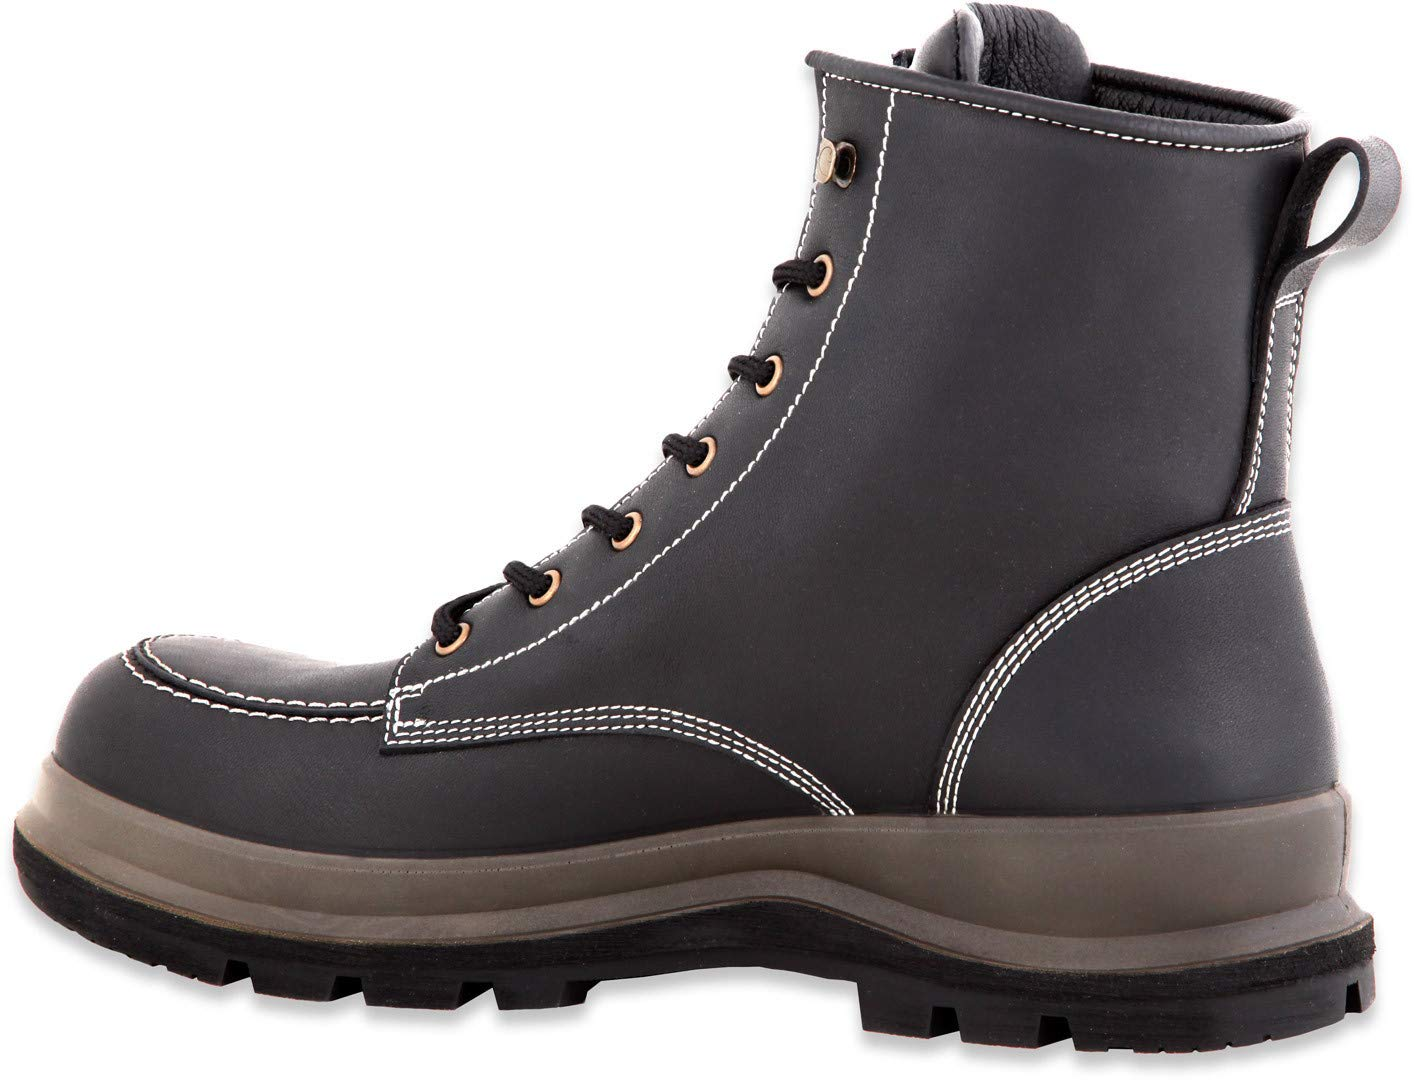 Carhartt Mens Hamilton Waterproof Breathable S3 Safety Ankle Boots